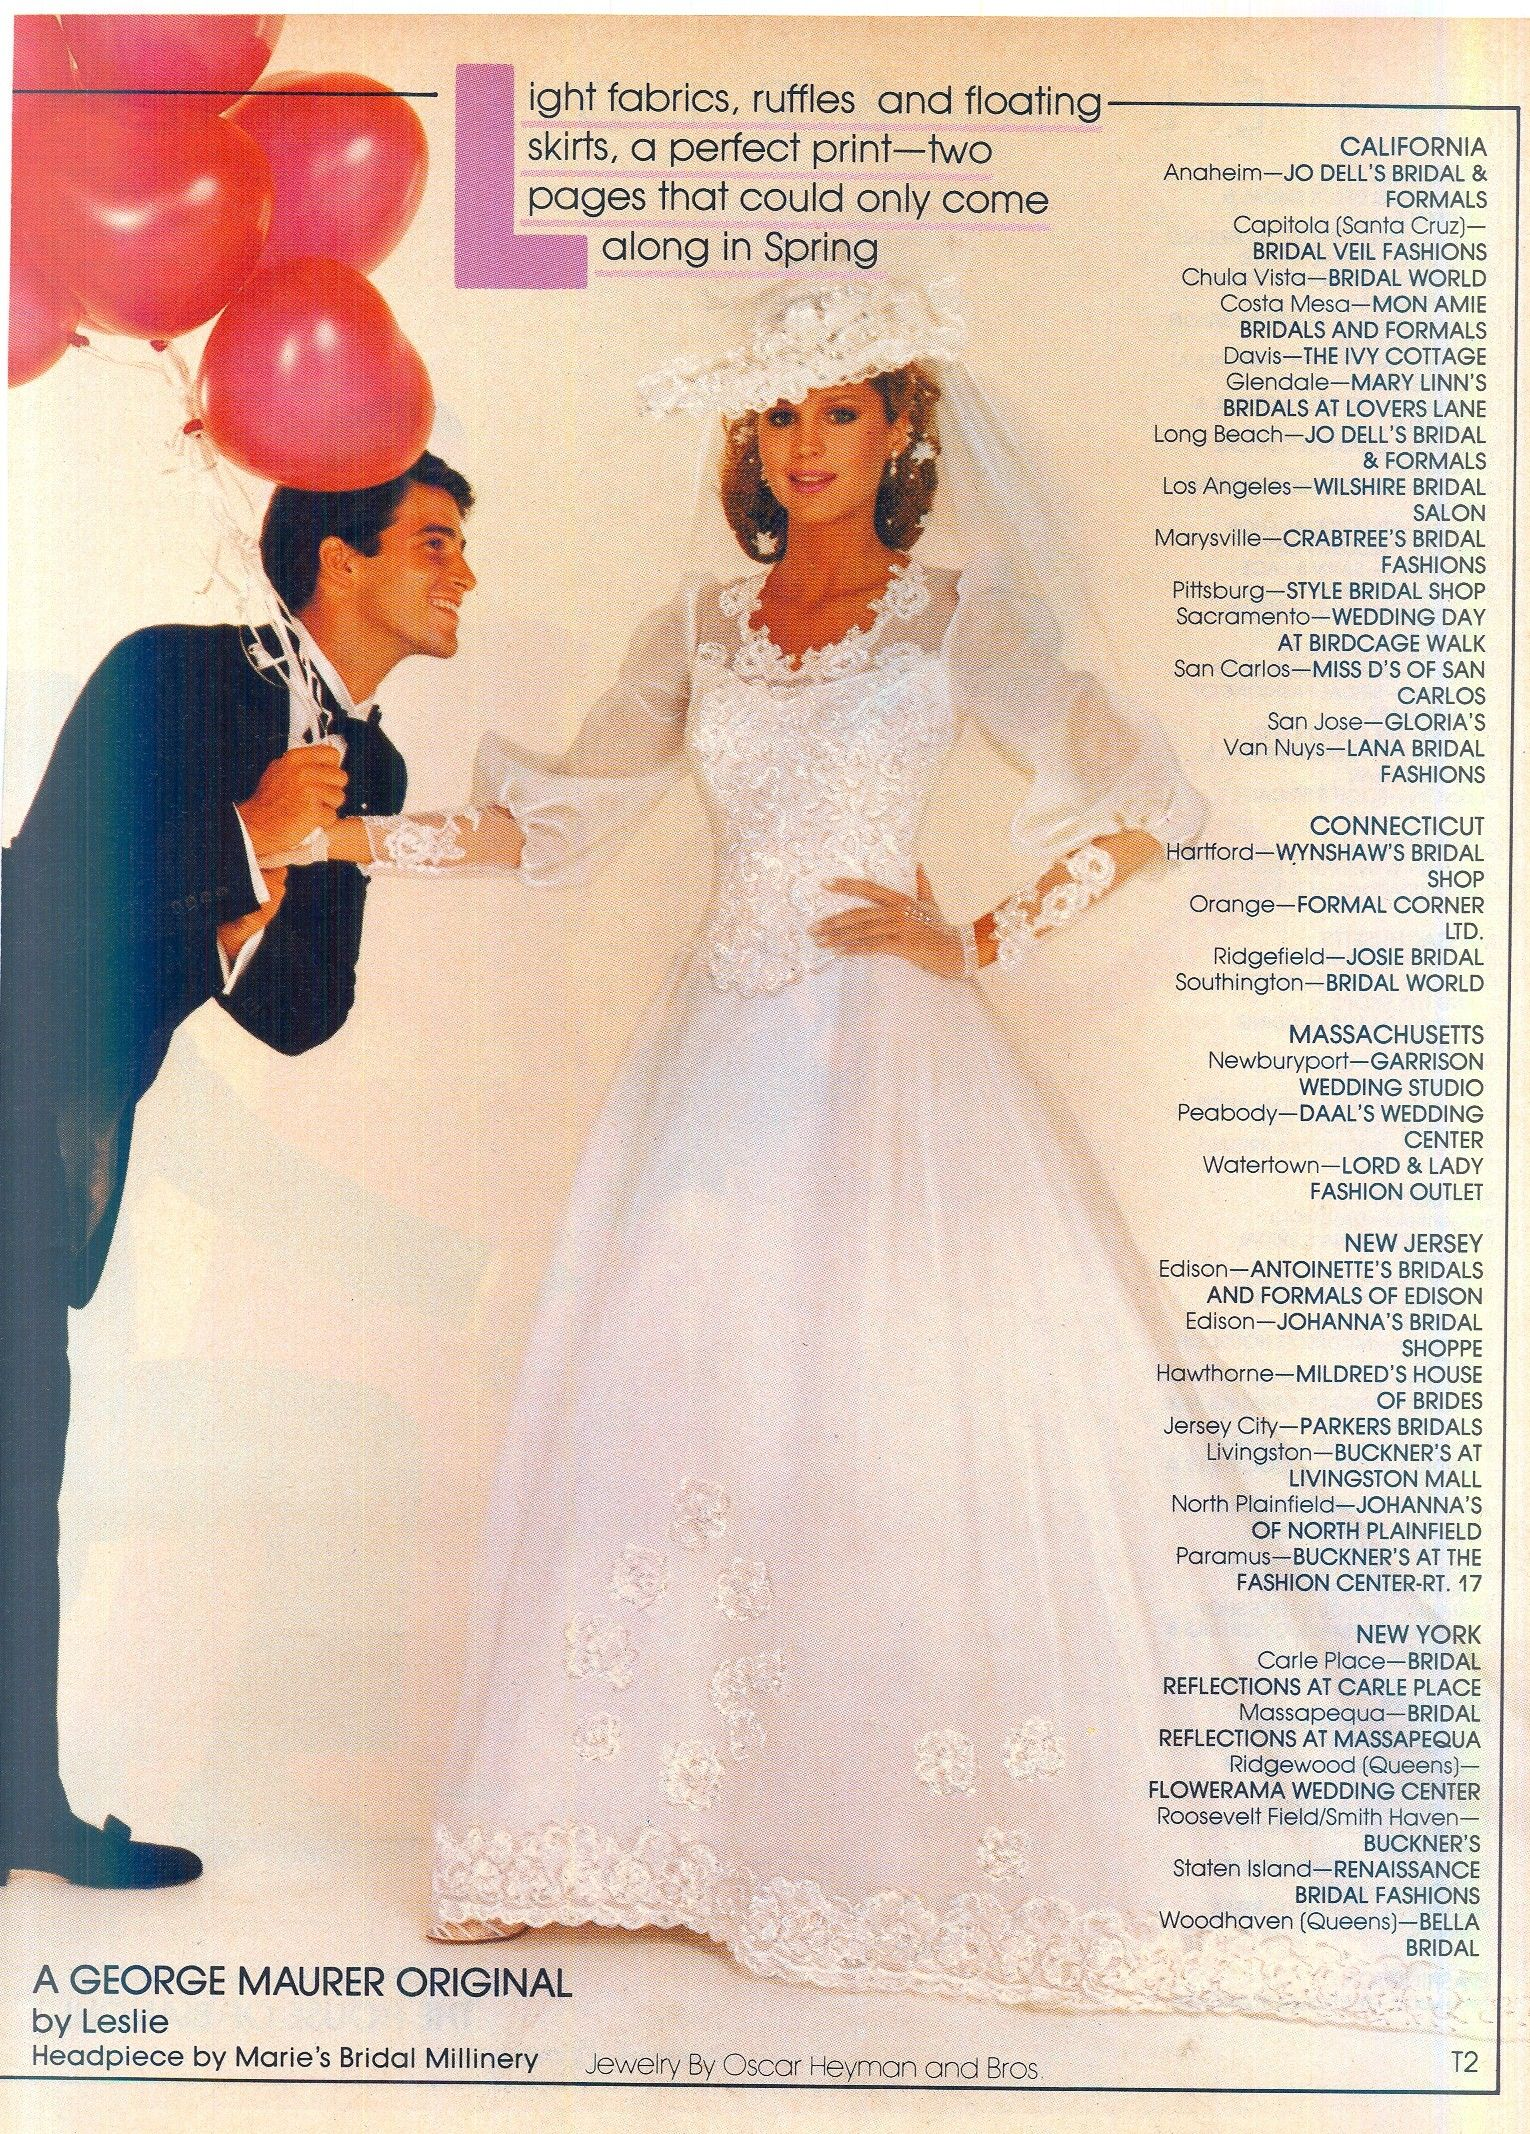 Modern Bride December 1982 January 1983 Bride Dress Vintage Wedding Dresses Vintage 1980s Wedding Dress